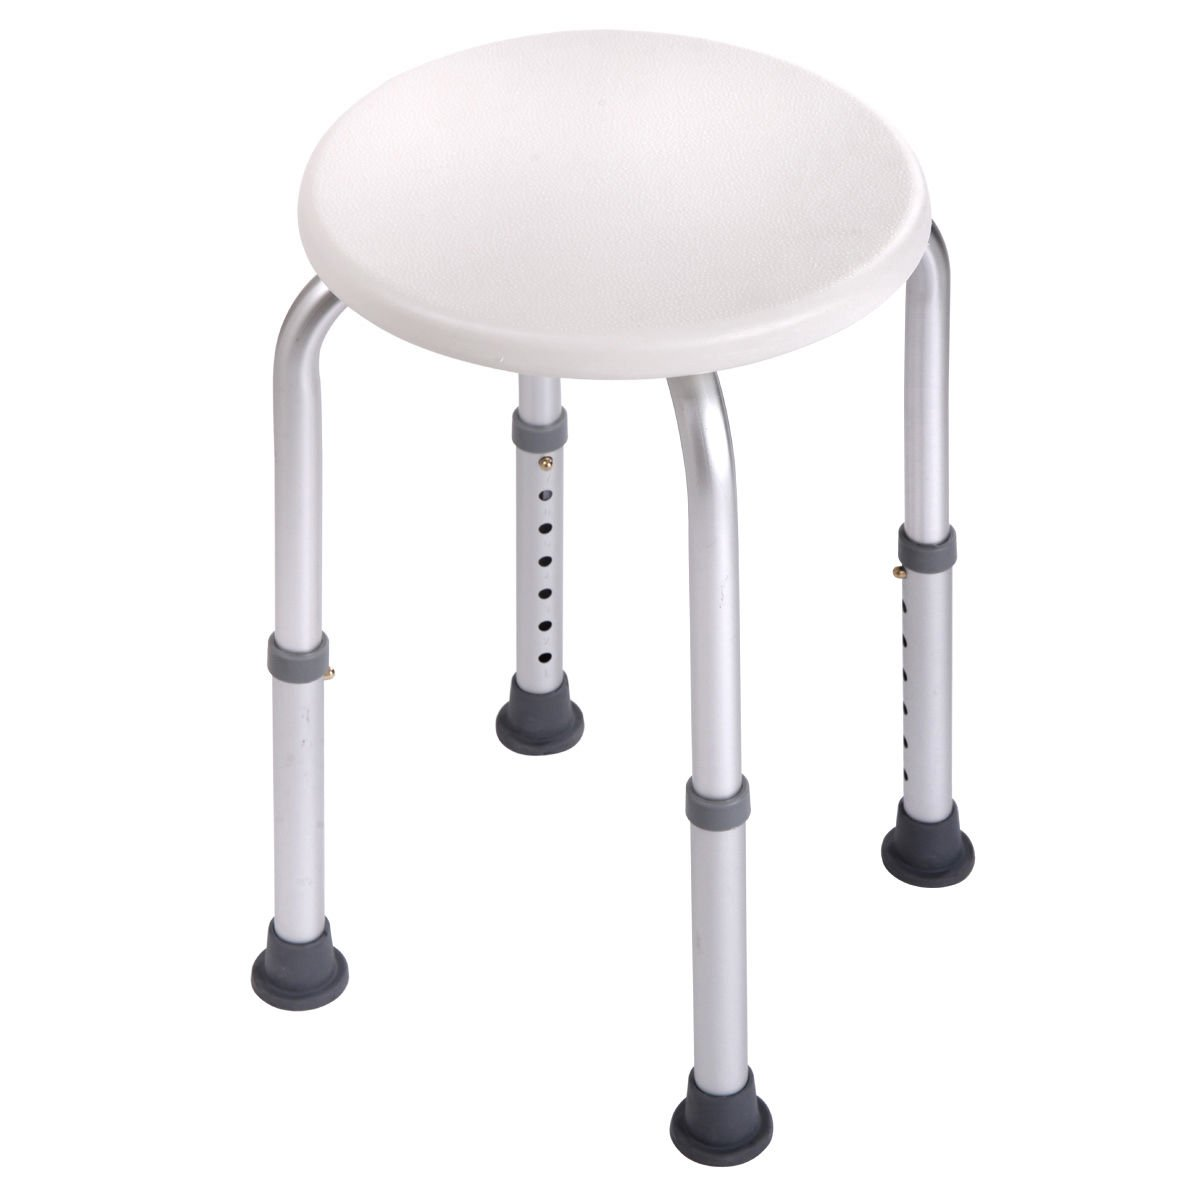 7 Height Adjustable Medical Bath Shower Stool Chair Bath Tub Seat in White New